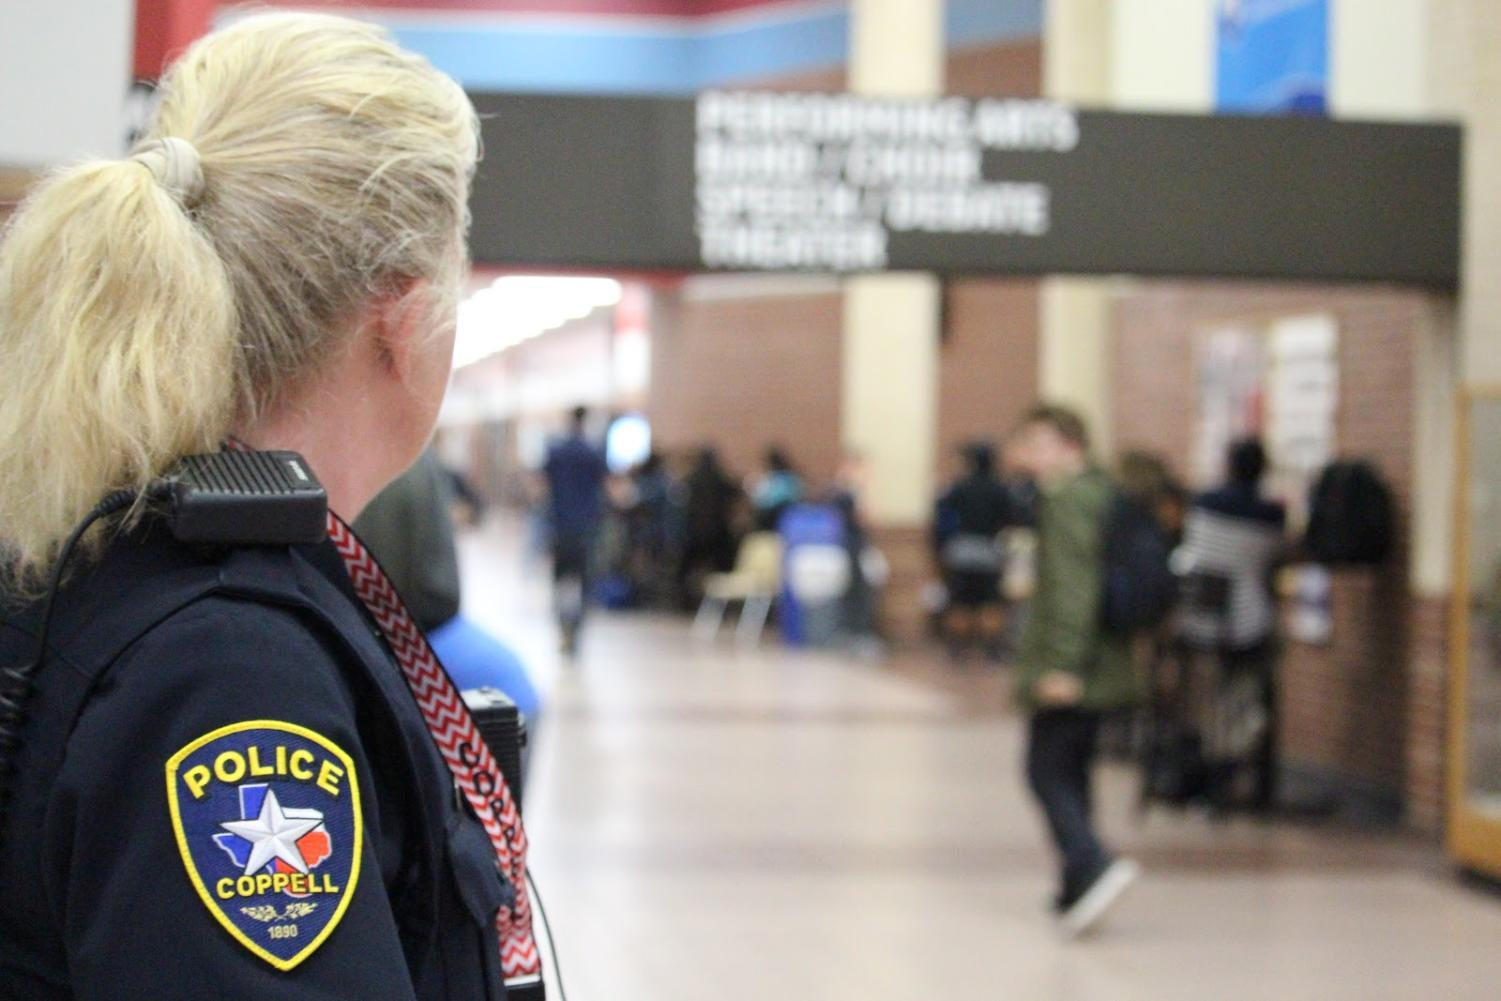 Coppell High School          Student Resource Officer Diane Patterson looks out for students as lunch begins today during sixth period. Having security officers during the school day helps to protect students against any unexpected violence.